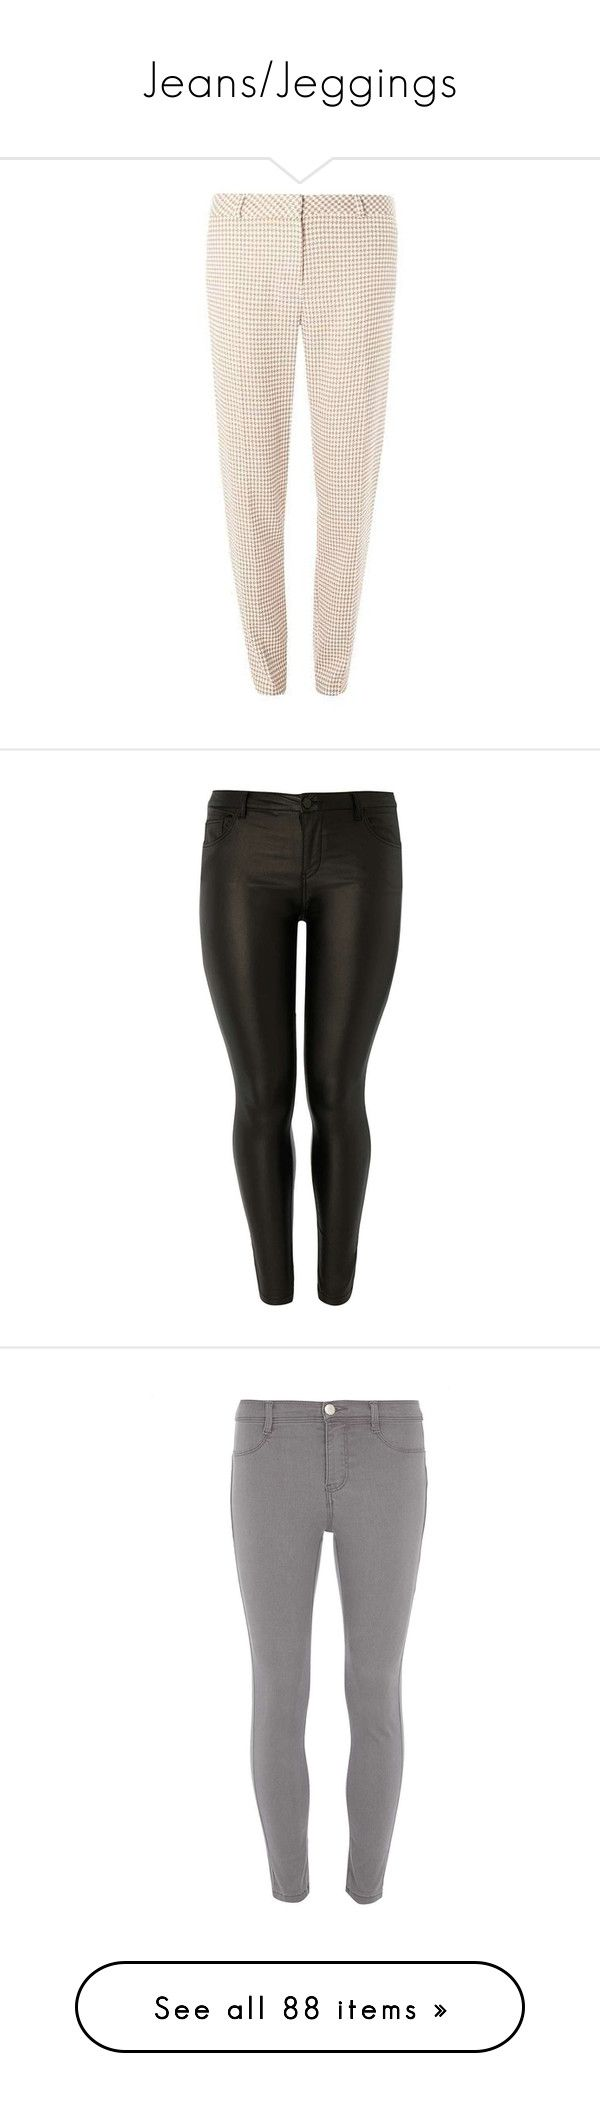 """""""Jeans/Jeggings"""" by curvygirlamy ❤ liked on Polyvore featuring pants, stoner pants, tall pants, pink pants, houndstooth pants, dorothy perkins, jeans, black, skinny fit jeans and mid-rise jeans"""